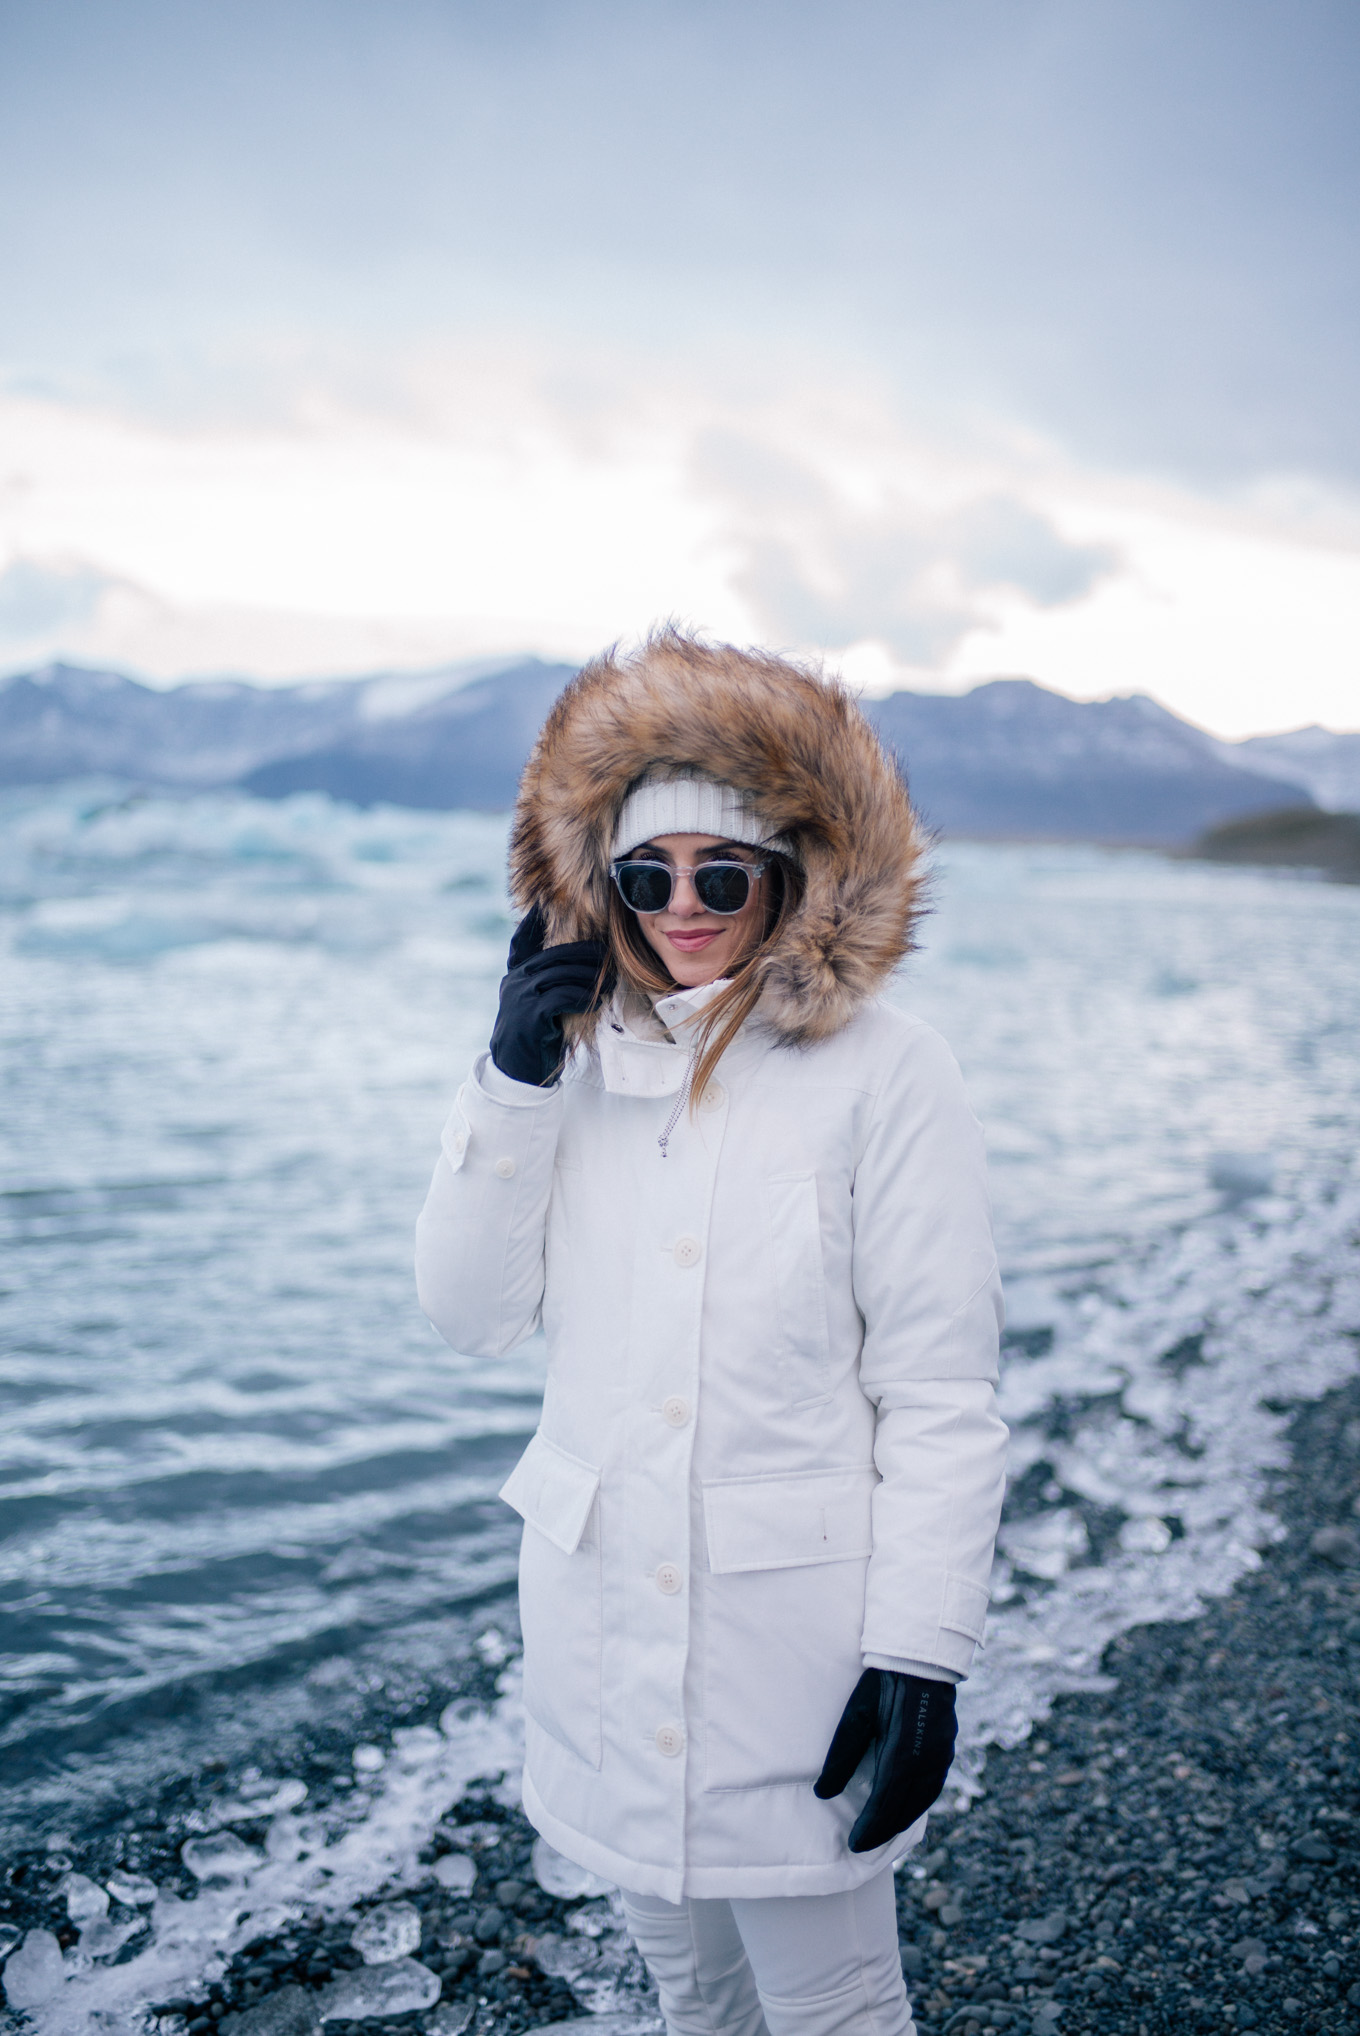 gmg-iceland-itinerary-winter-1006074